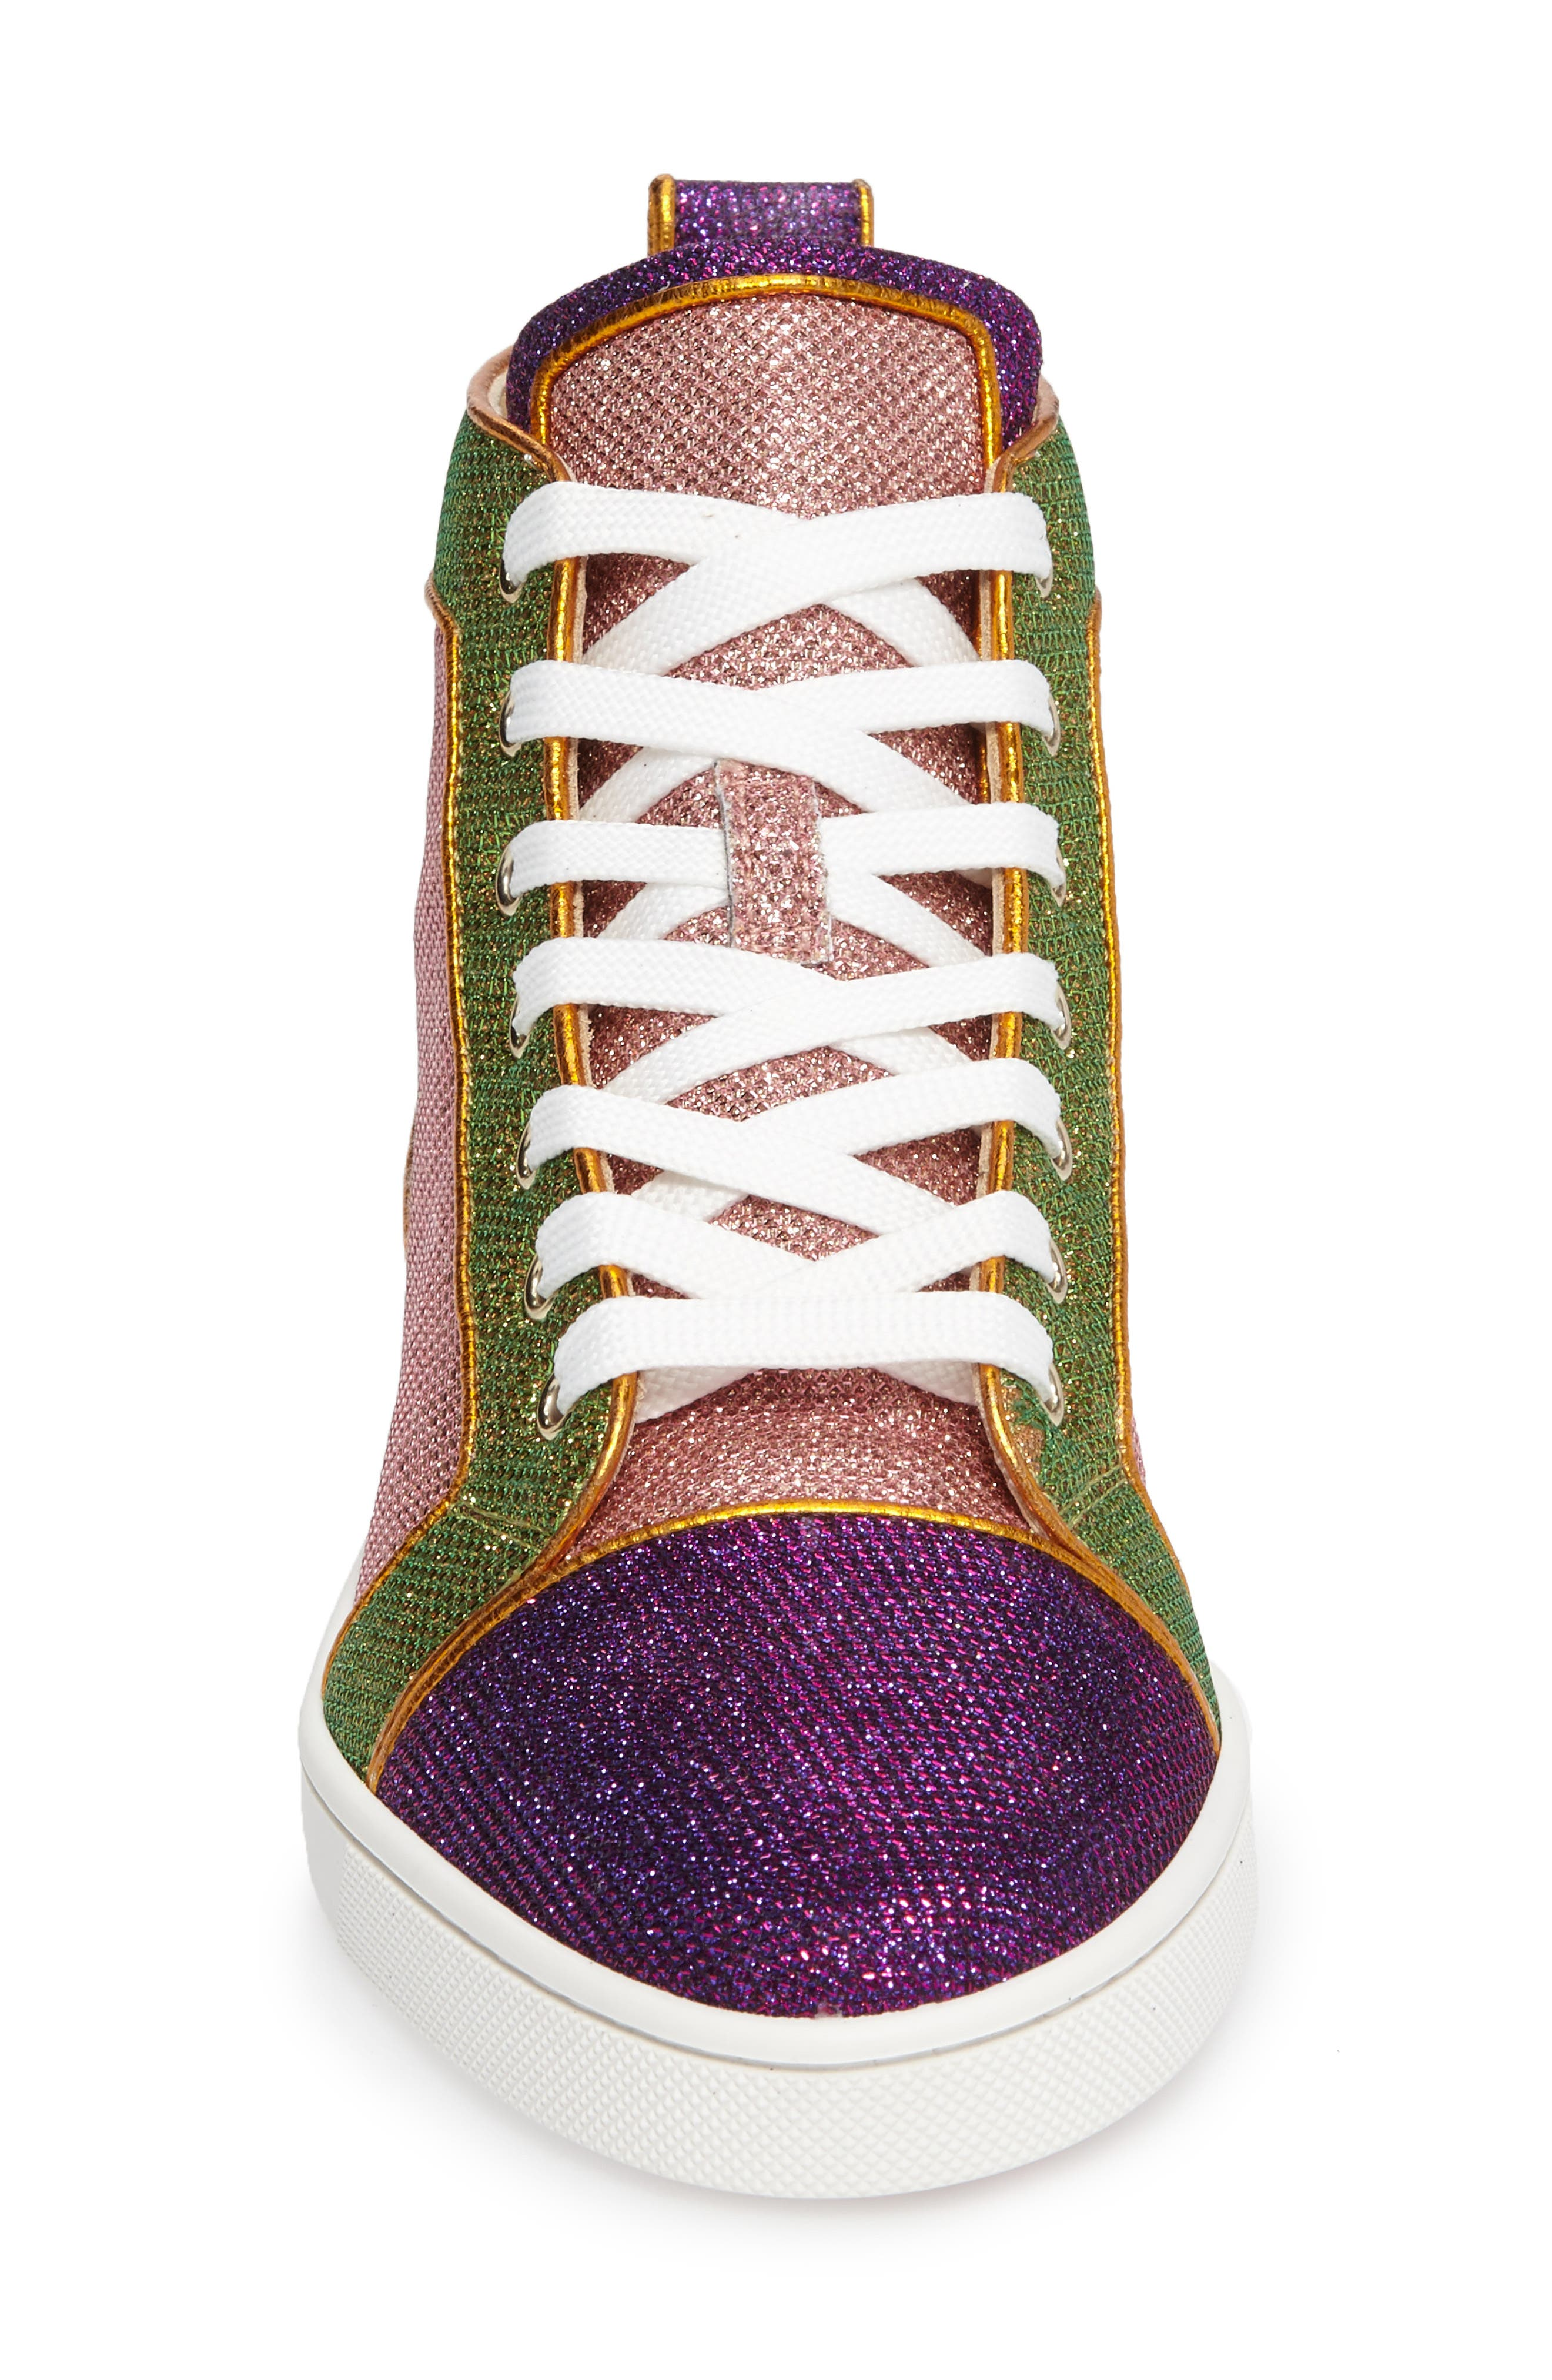 Bip Bip High Top Sneaker,                             Alternate thumbnail 13, color,